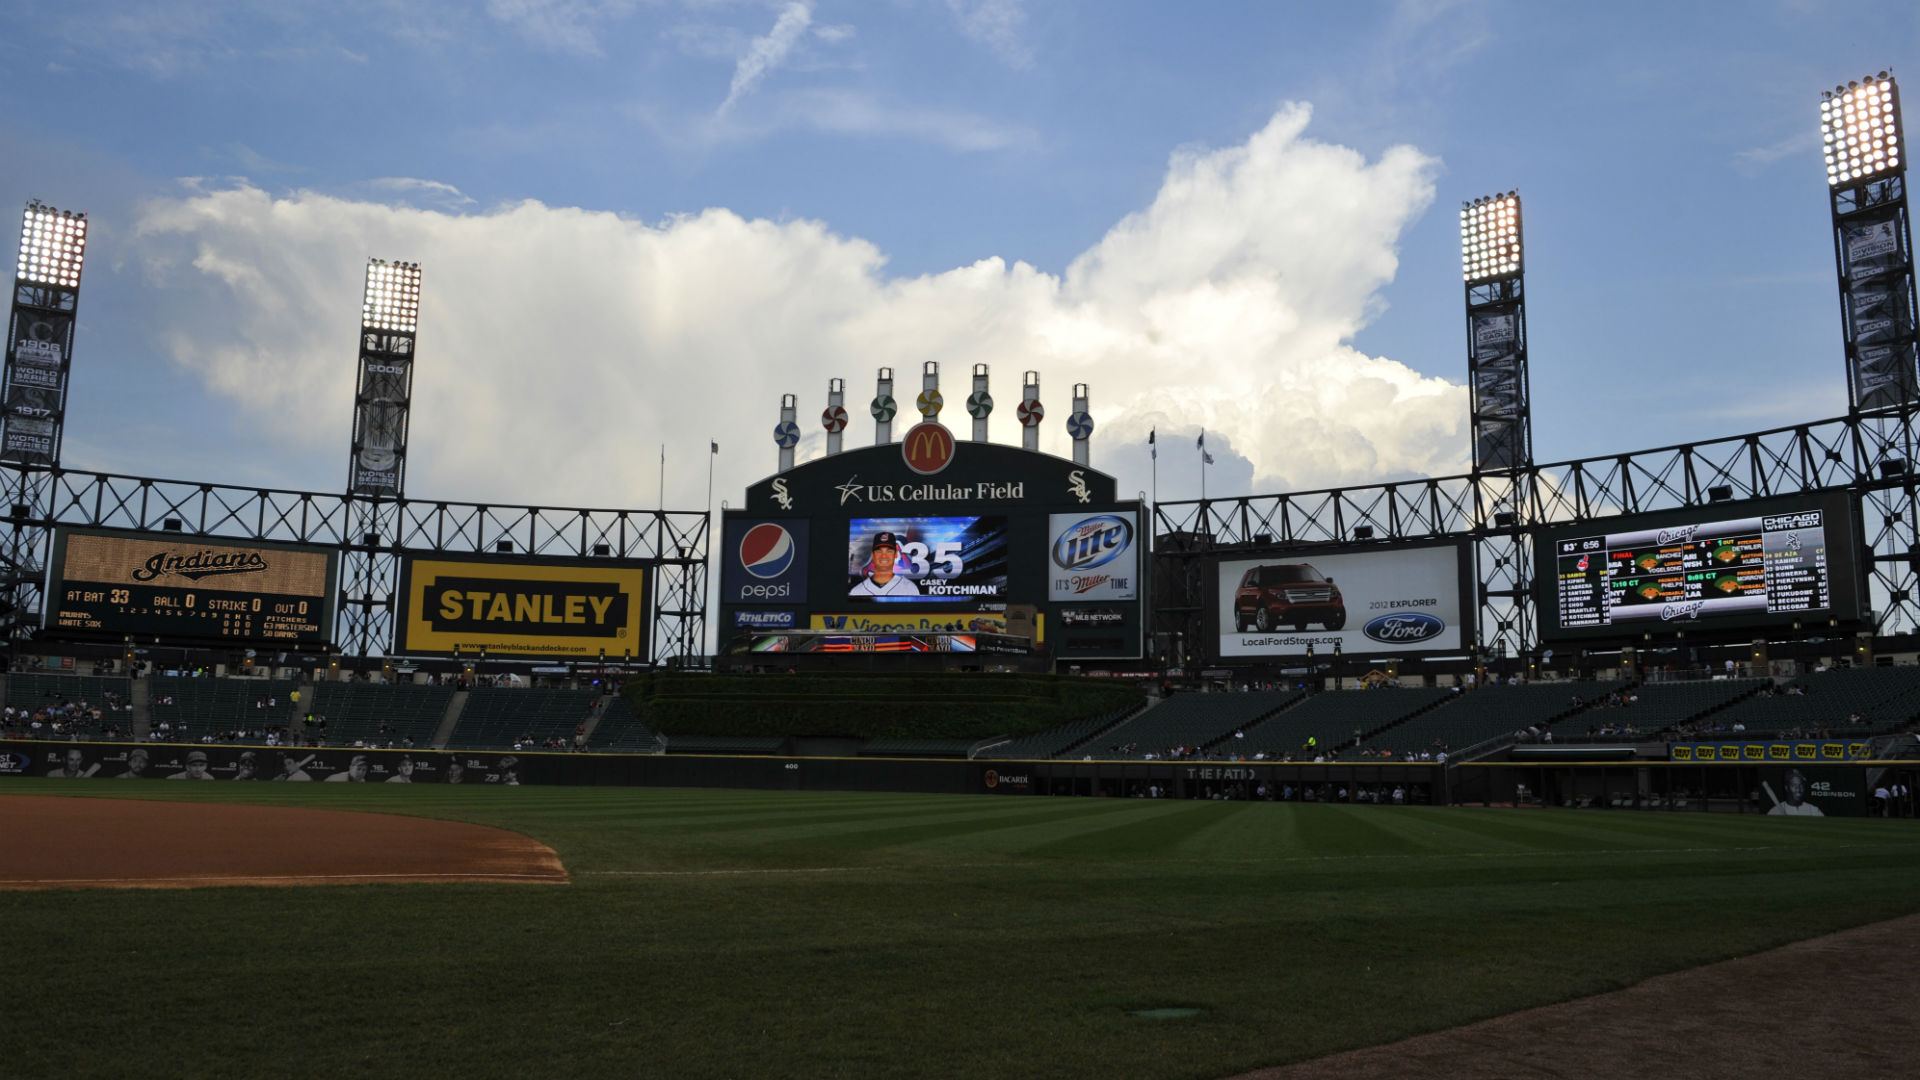 ... fire at U.S. Cellular Field won't delay White Sox's opener